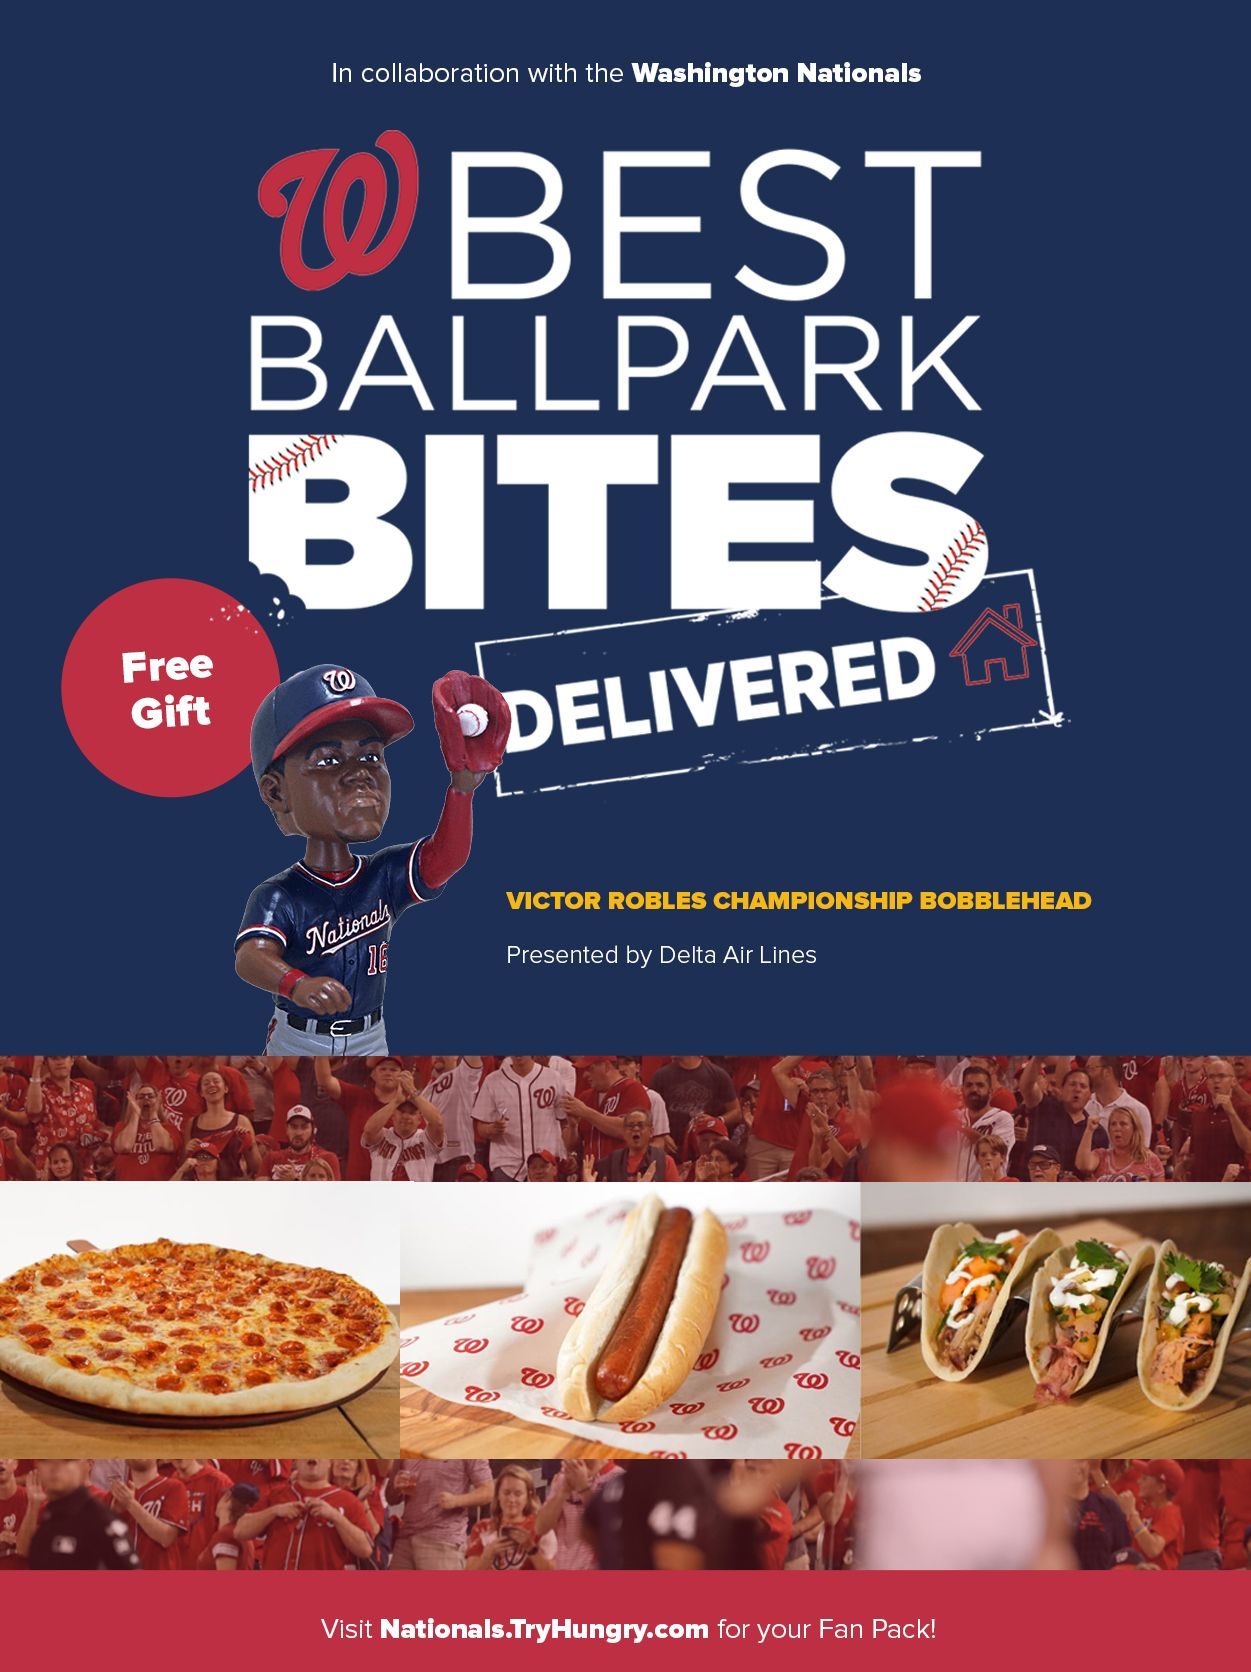 HUNGRY Brings Baseball Fans a Taste of the Ballpark Through Its Game Day Deliveries in the Nation's Capital